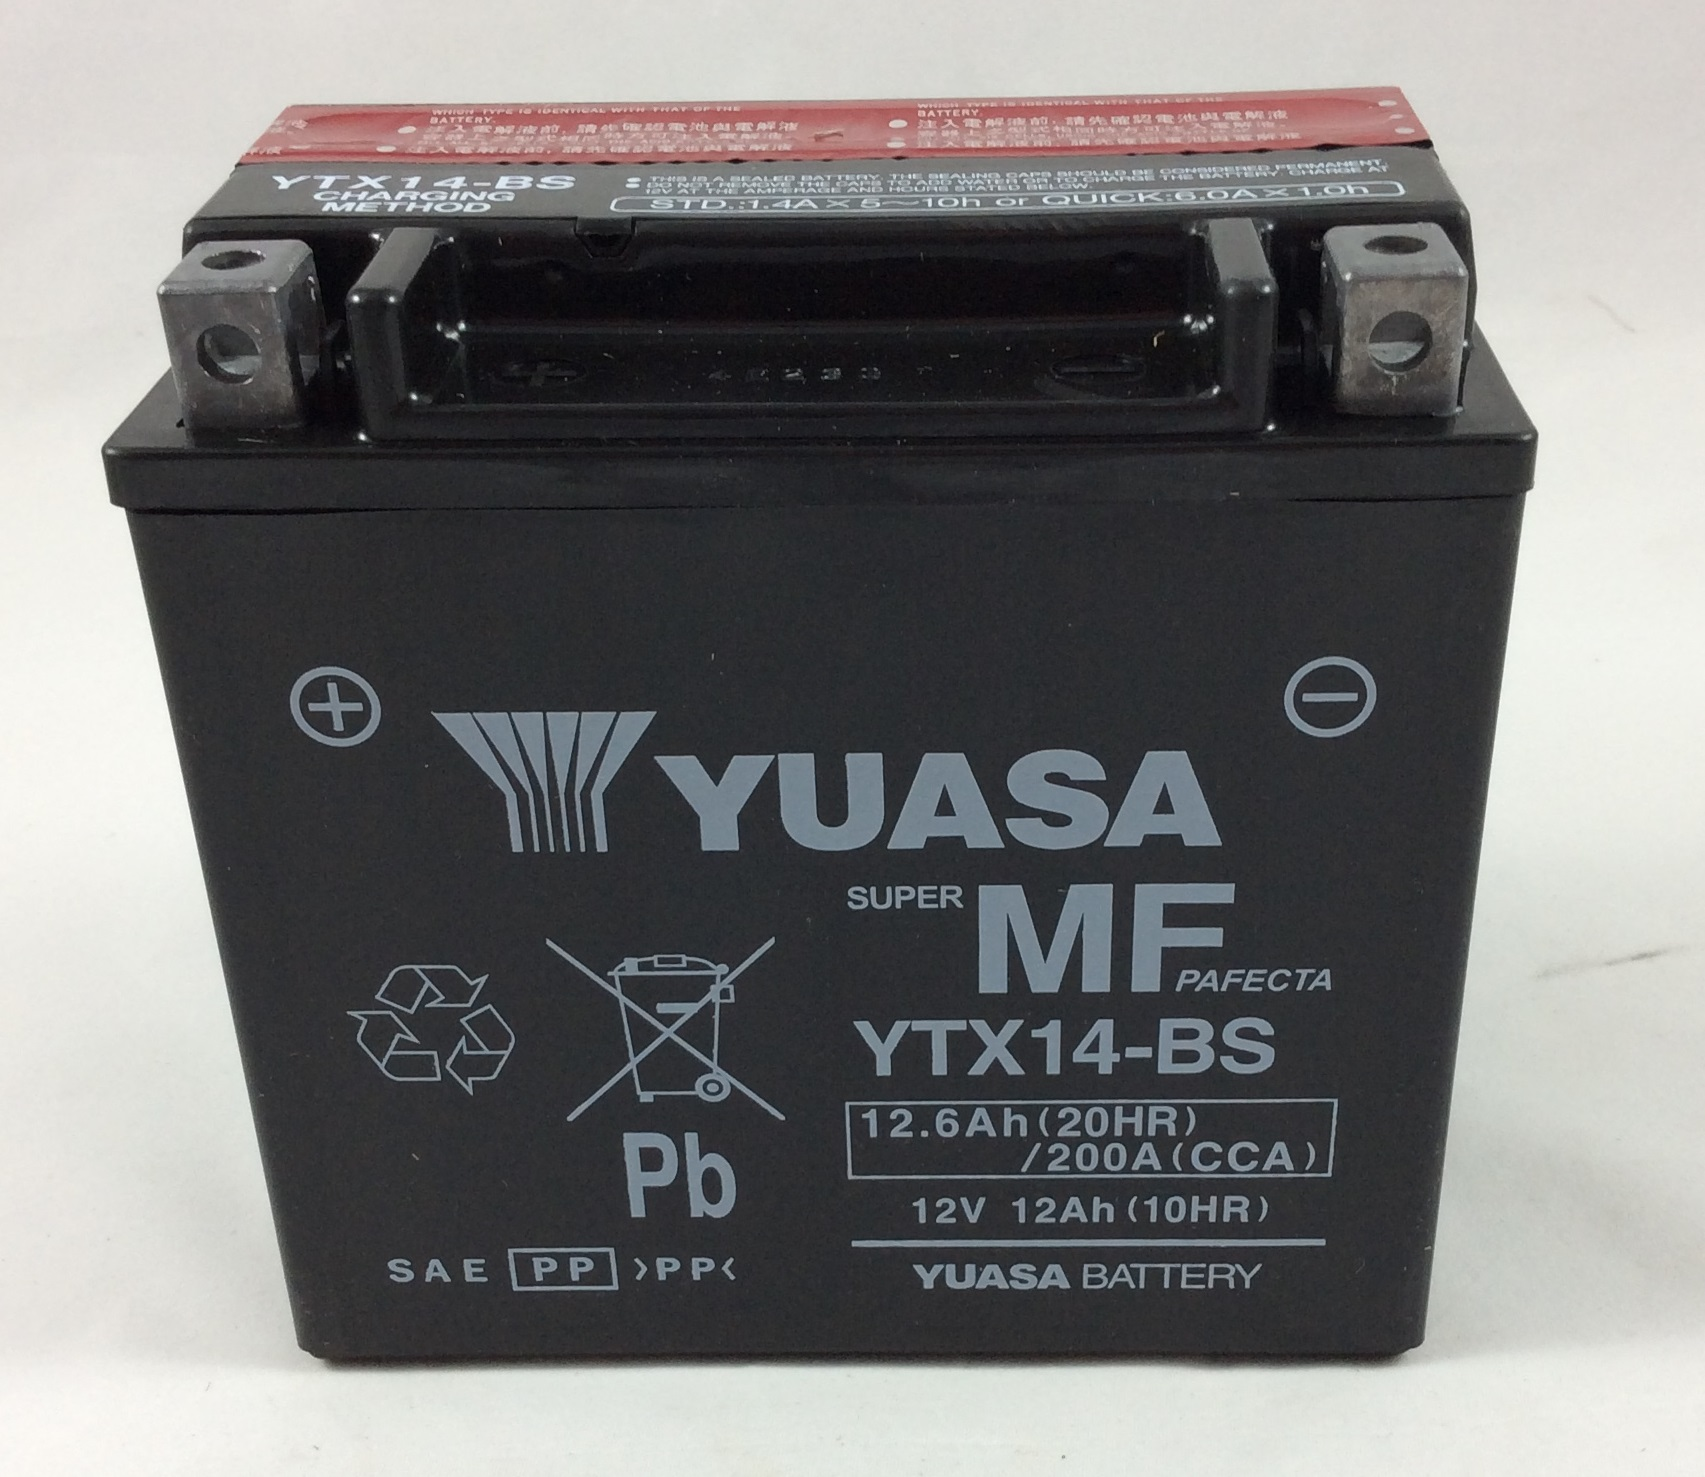 Batteria moto scooter yuasa 12v 12ah ytx14 bs sos for Bricoman batteria 12v